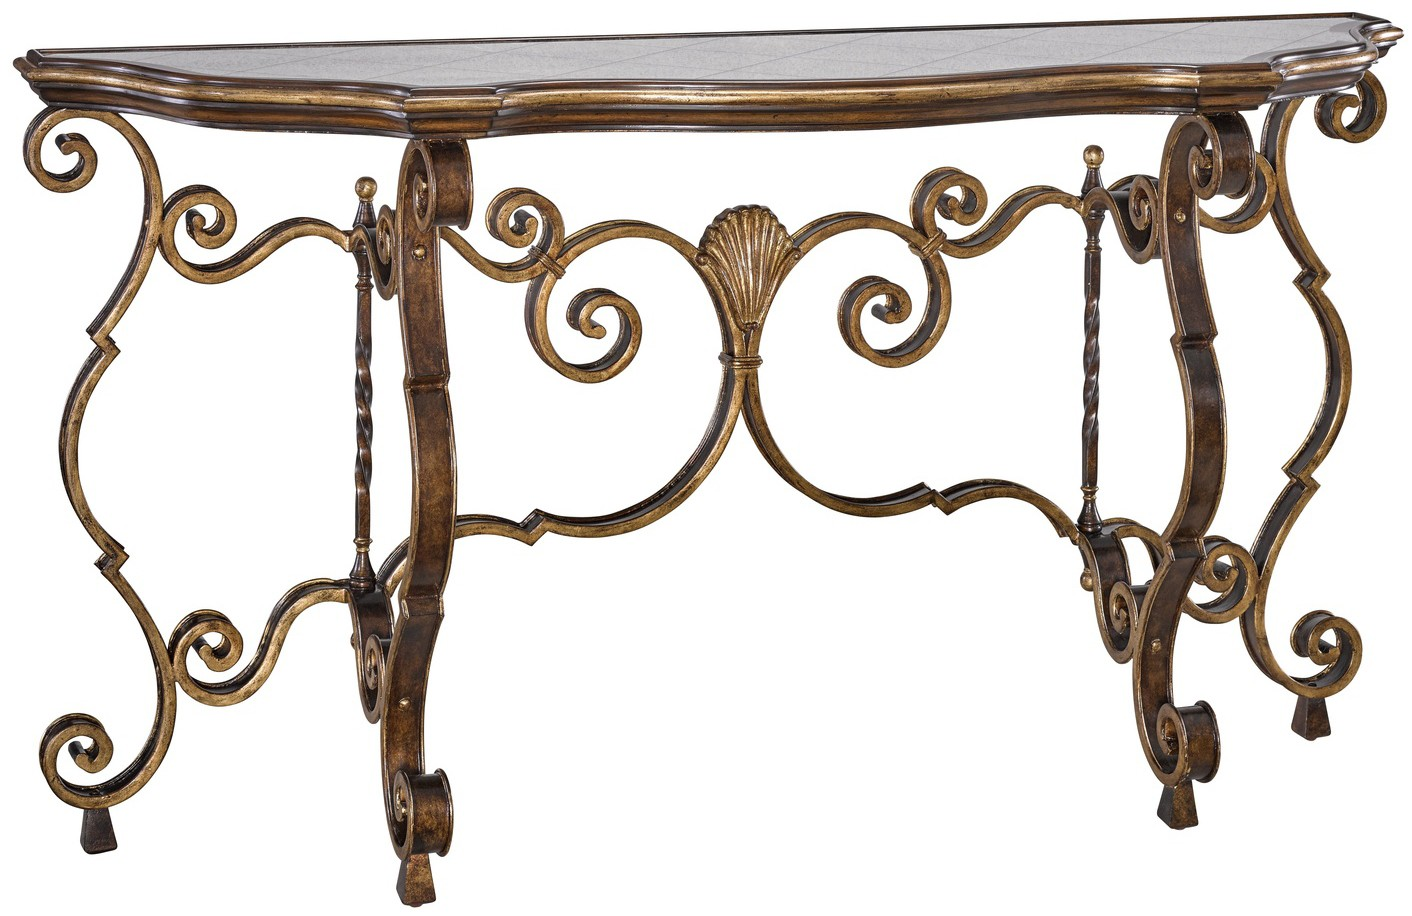 Console U0026 Sofa Tables Traditional Console Table,. Antiqued Gold Leaf Trim  And Detailed Metalwork